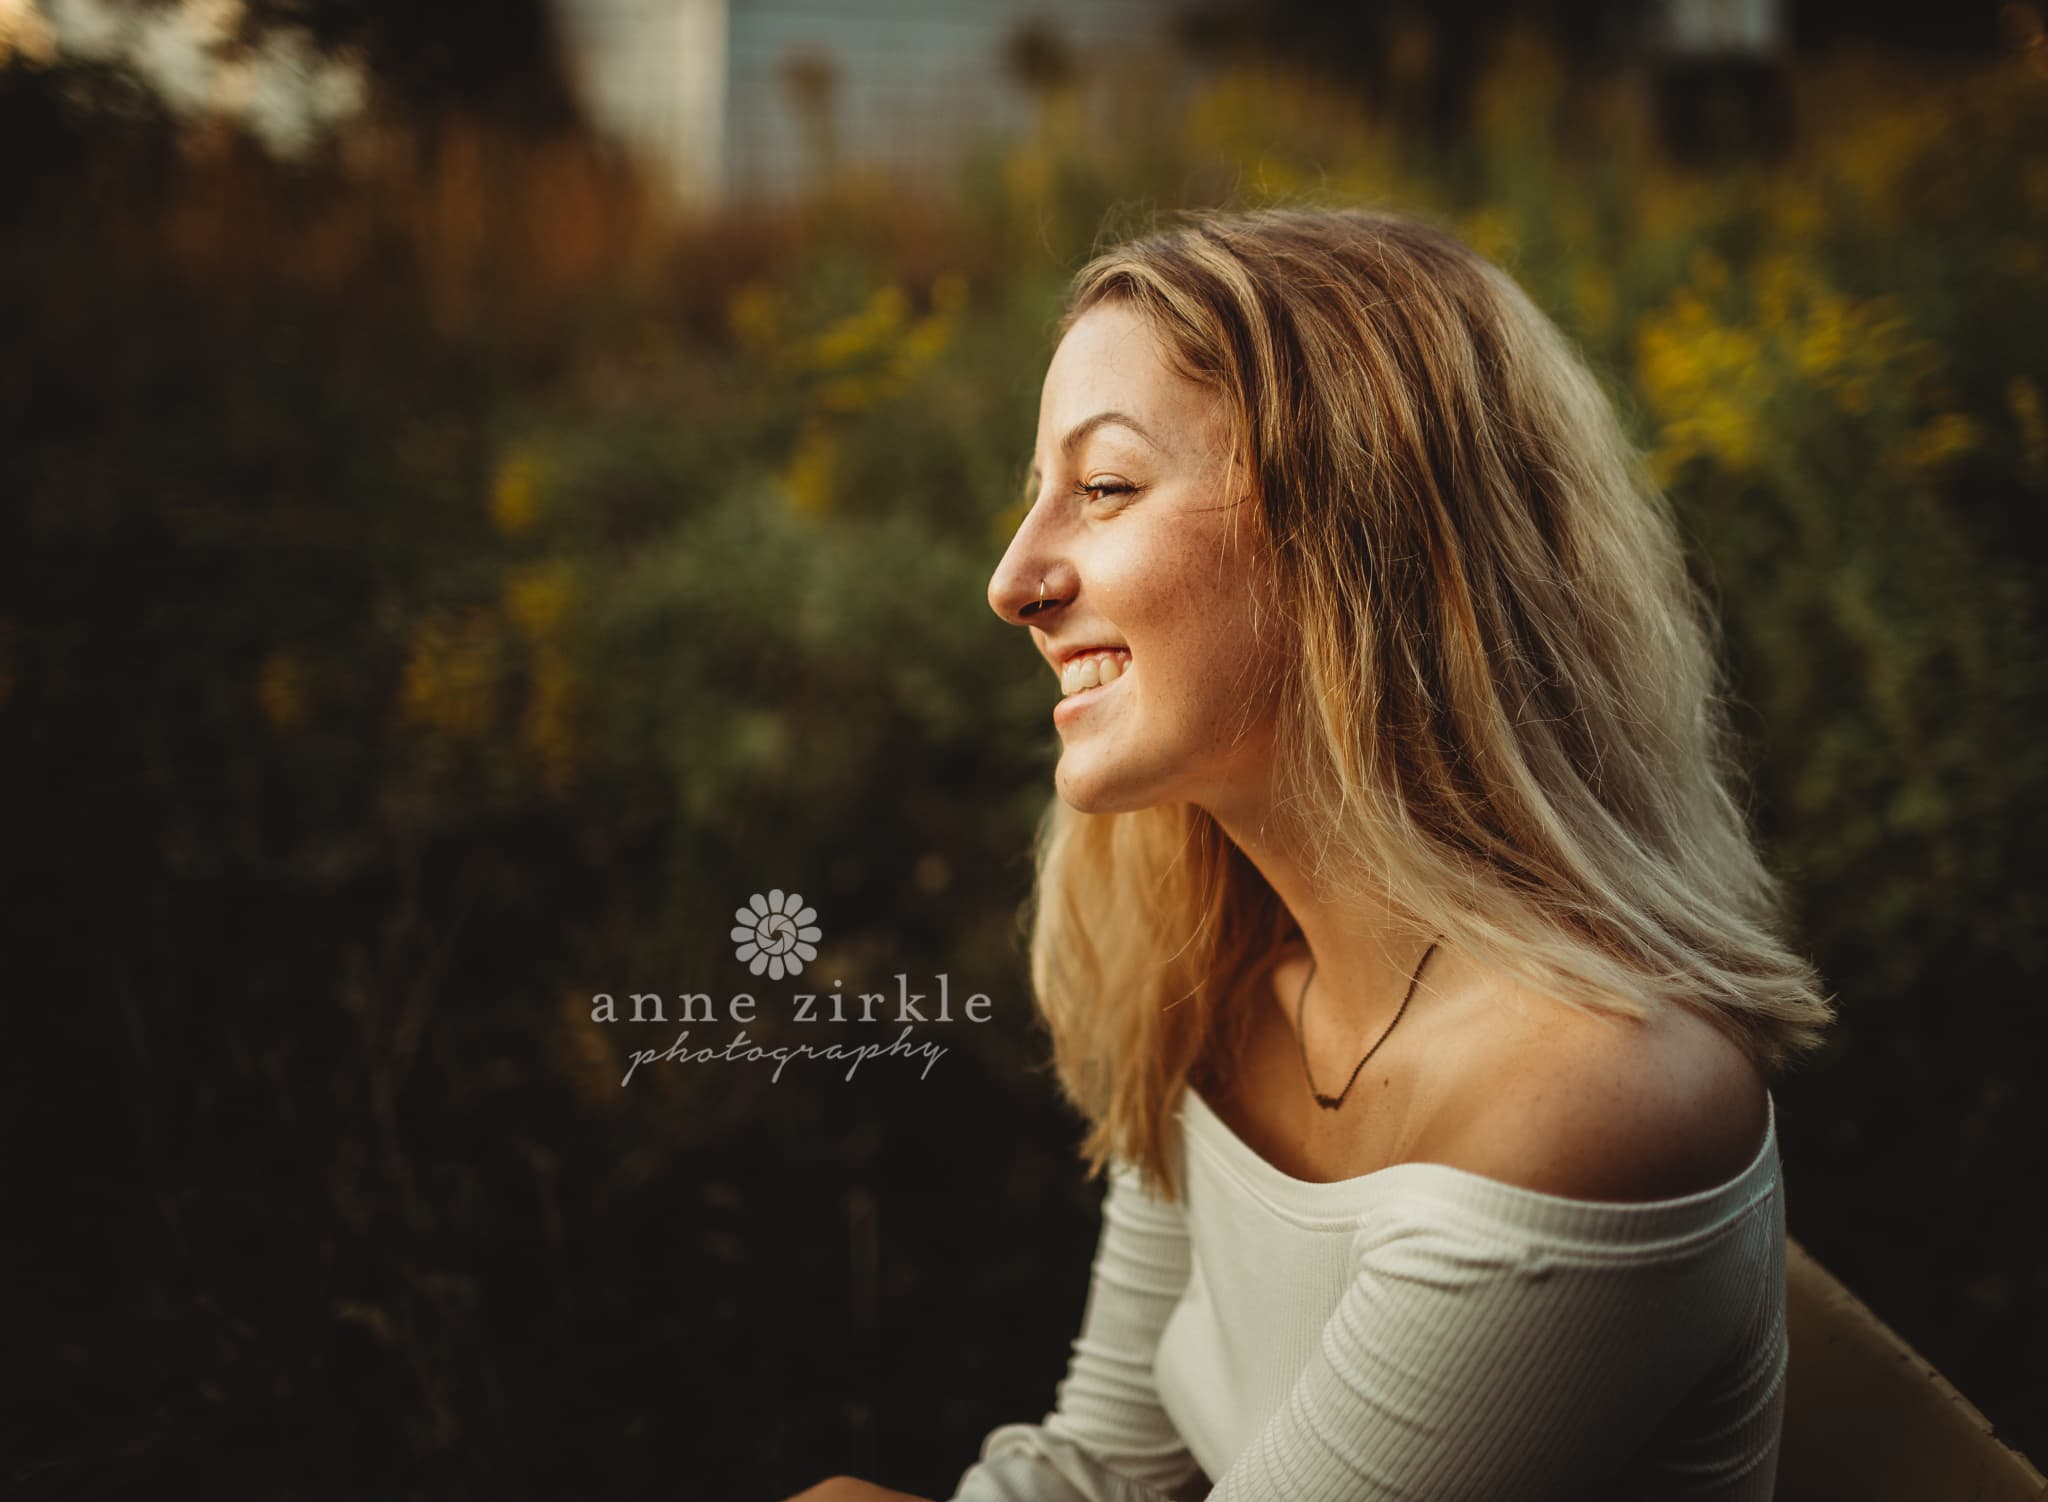 senior girl profile with light on face #mooresville #northcarolina #davidson #lakenorman #southiredell #pinelakeprep #highschool #highschoolsenior #highschoolseniors #seniors